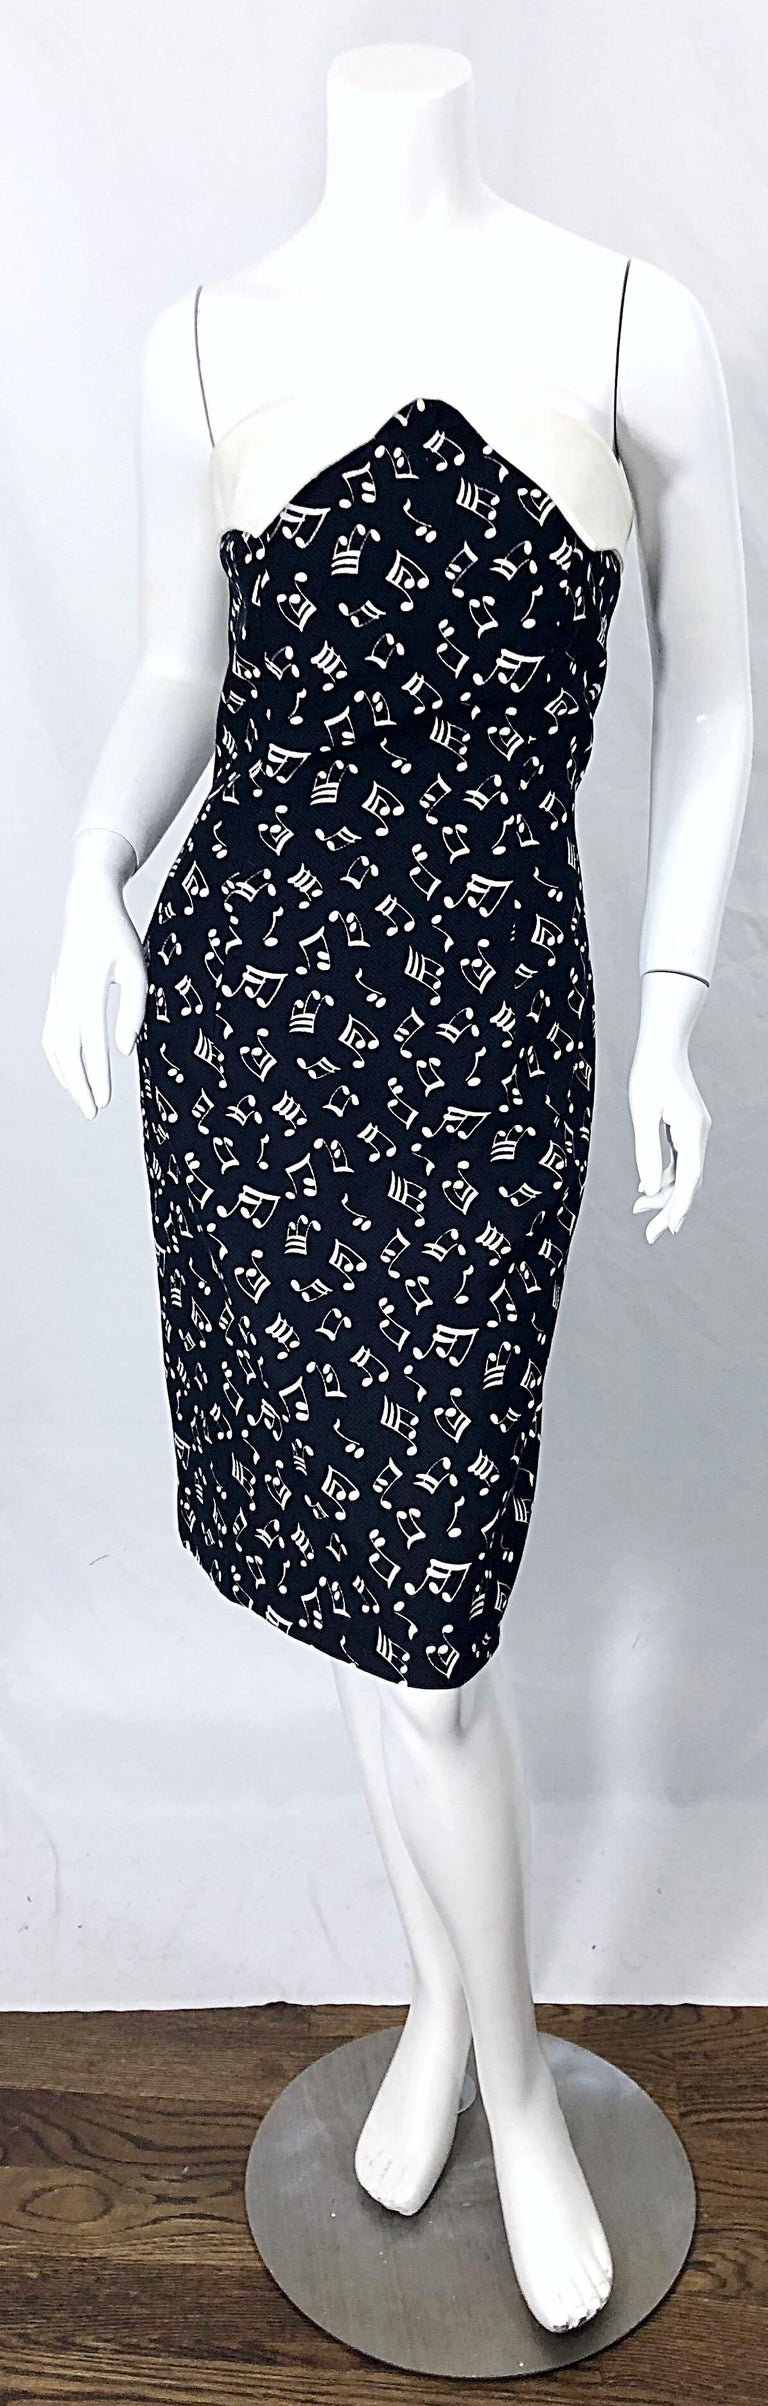 1980s Patrick Kelly Size 10 Novelty Music Print Black and White Strapless Dress For Sale 10